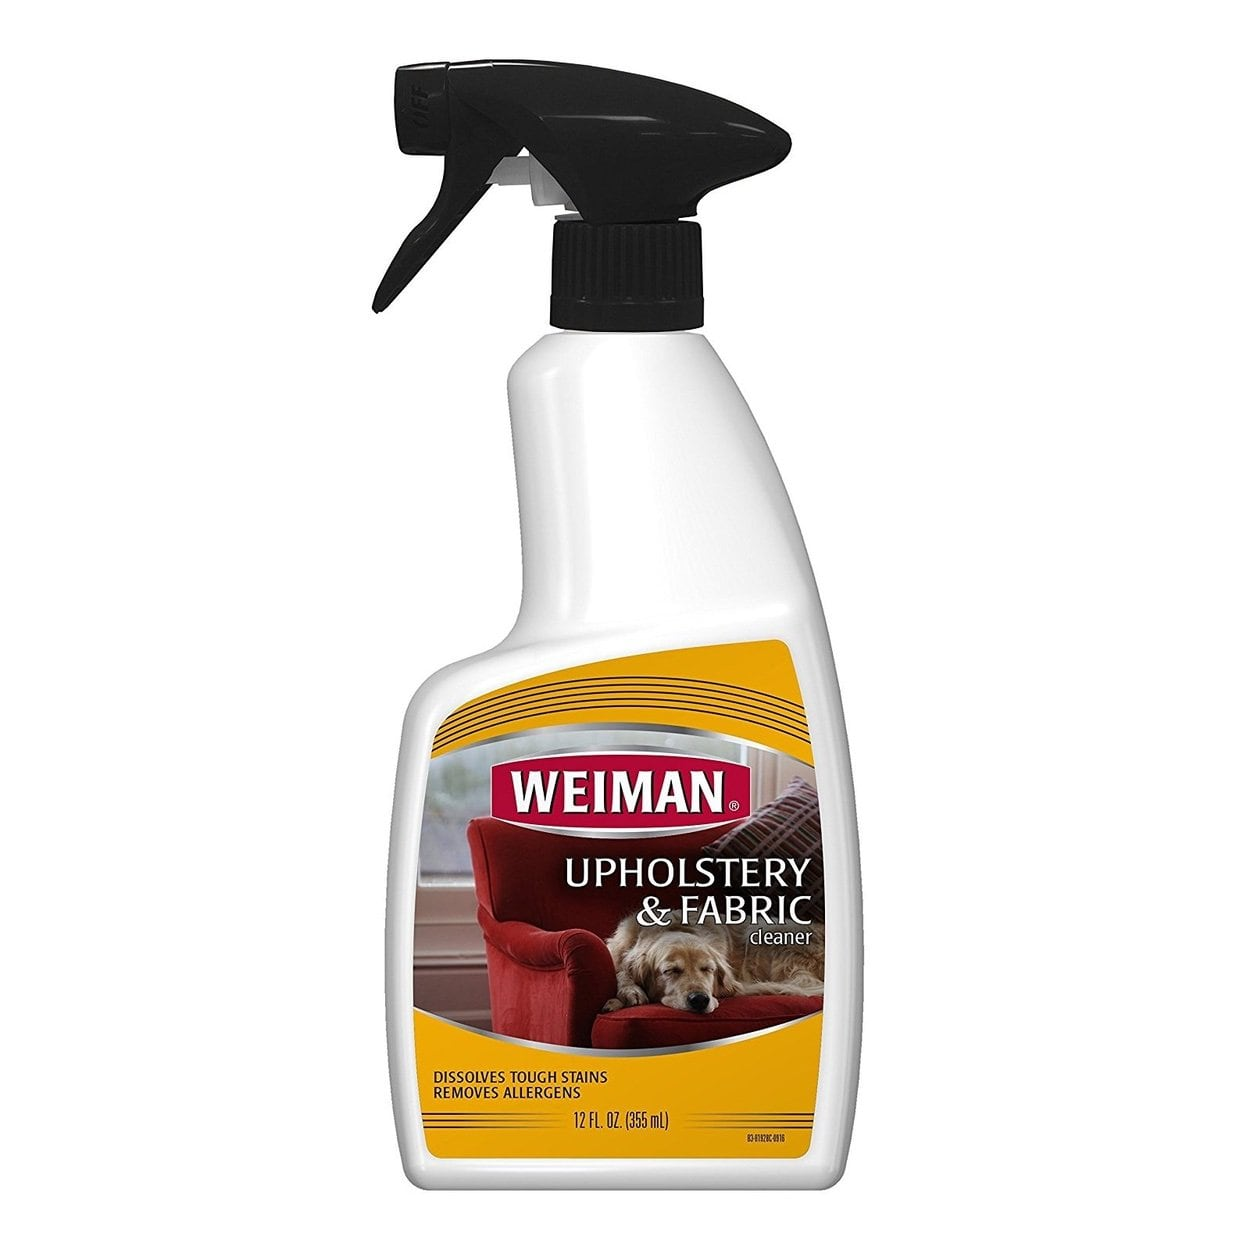 Weiman 83 Upholstery & Fabric Cleaner